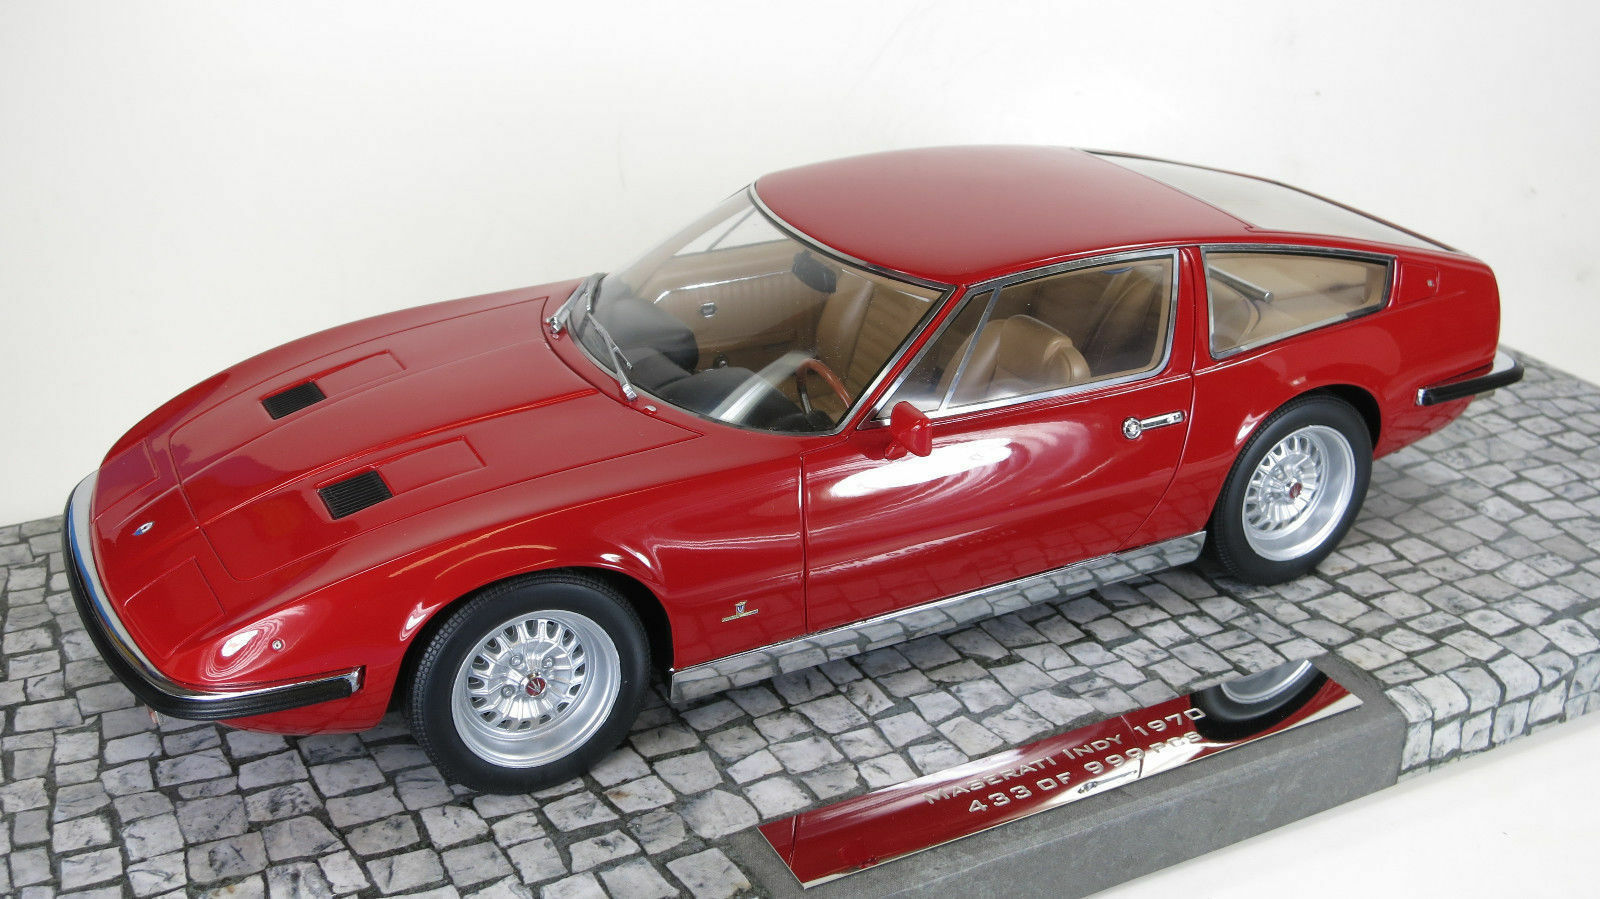 1 18 Minichamps 1970 Maserati Indy (Red) Limited Edition 1 Von 999 - Rarity